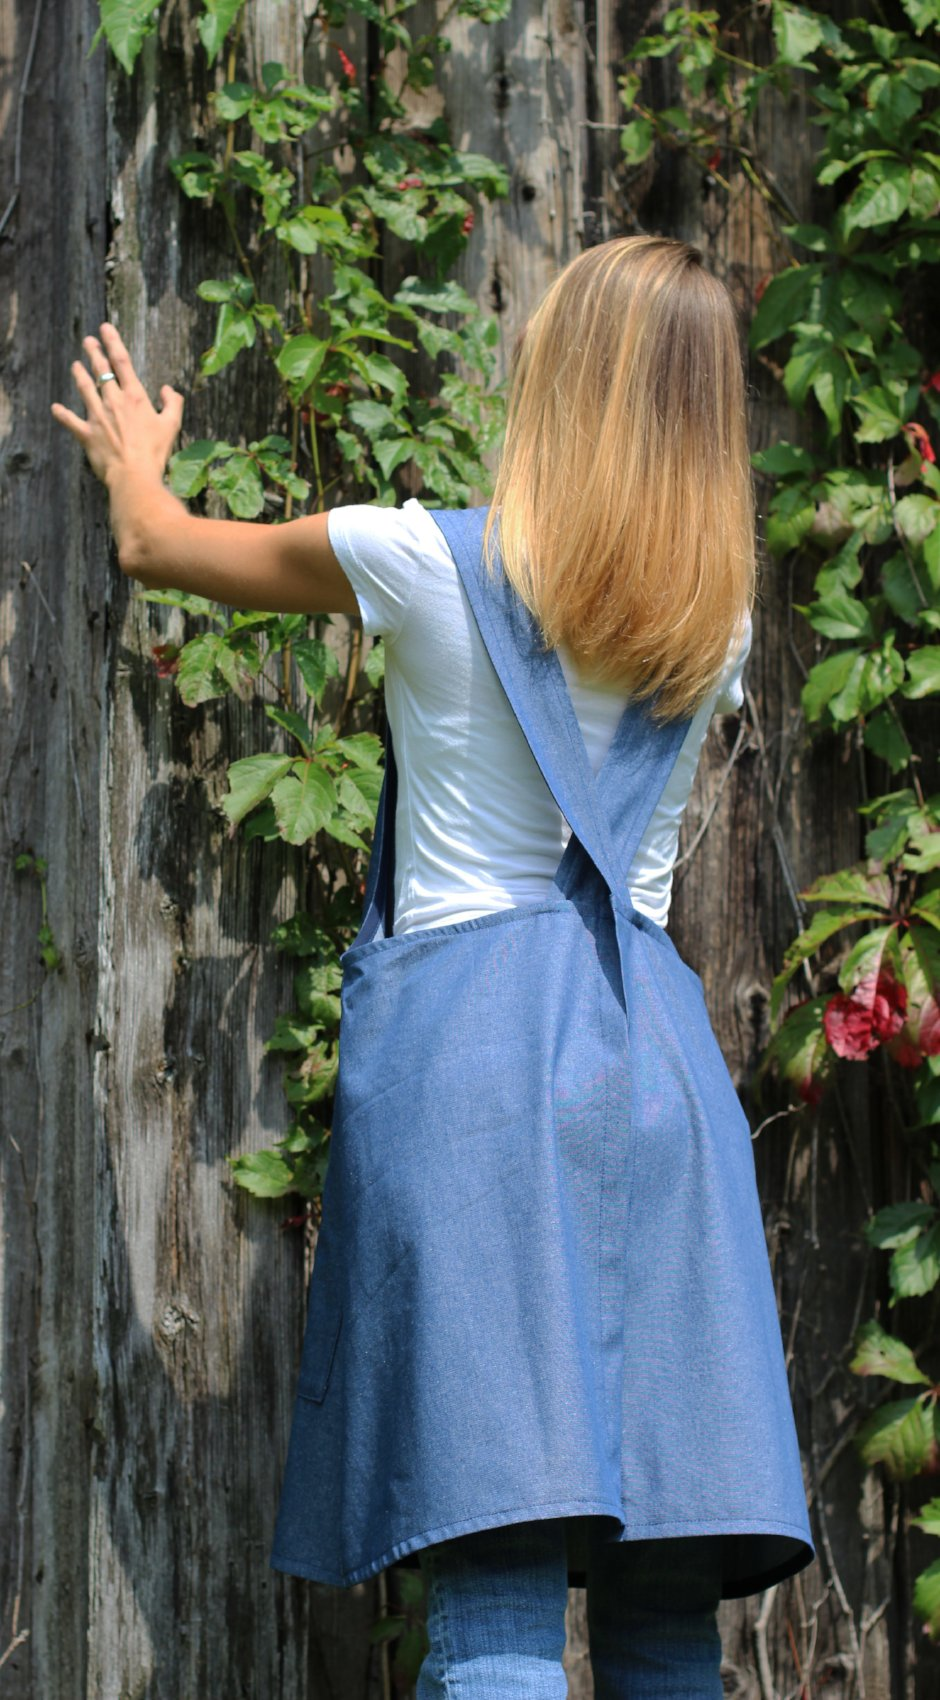 XS-5X No Tie Crossback Apron with Front Pocket in Denim, back view